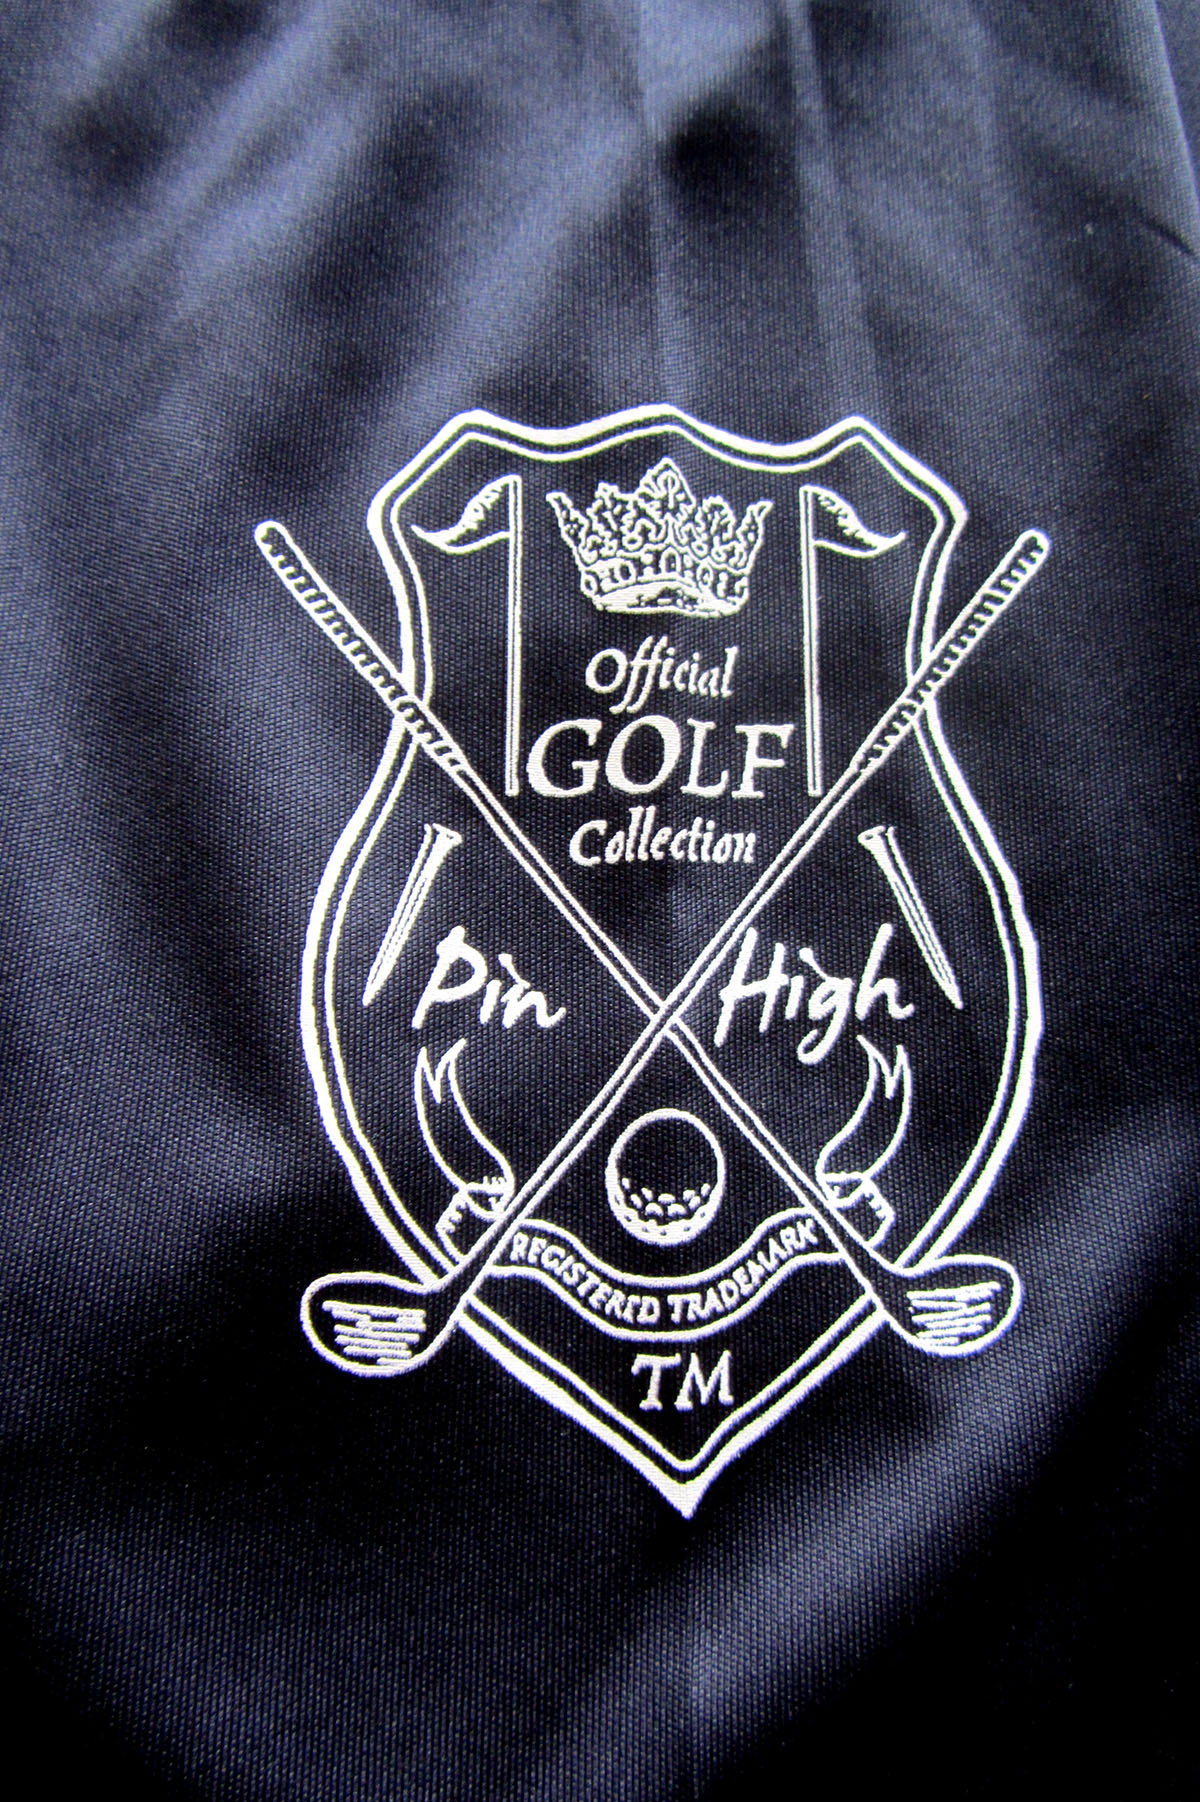 Pin High Golfwear Polo Heren JL Clubs